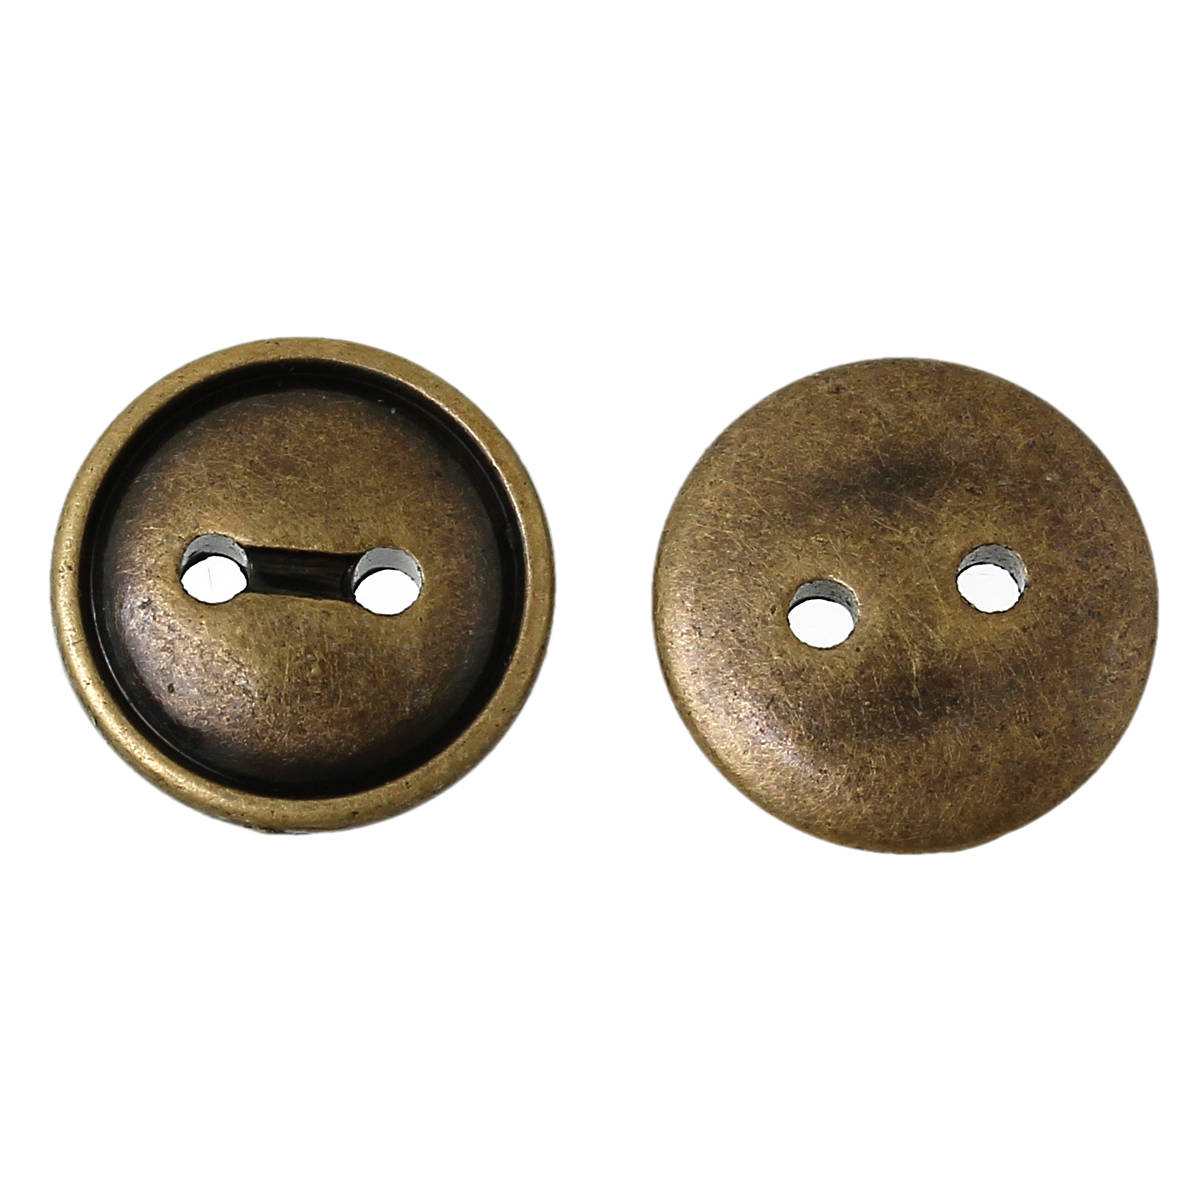 "Acrylic Sewing Buttons Round Antique Bronze 2 Hole Button 13mm  (3/4"") B54485"